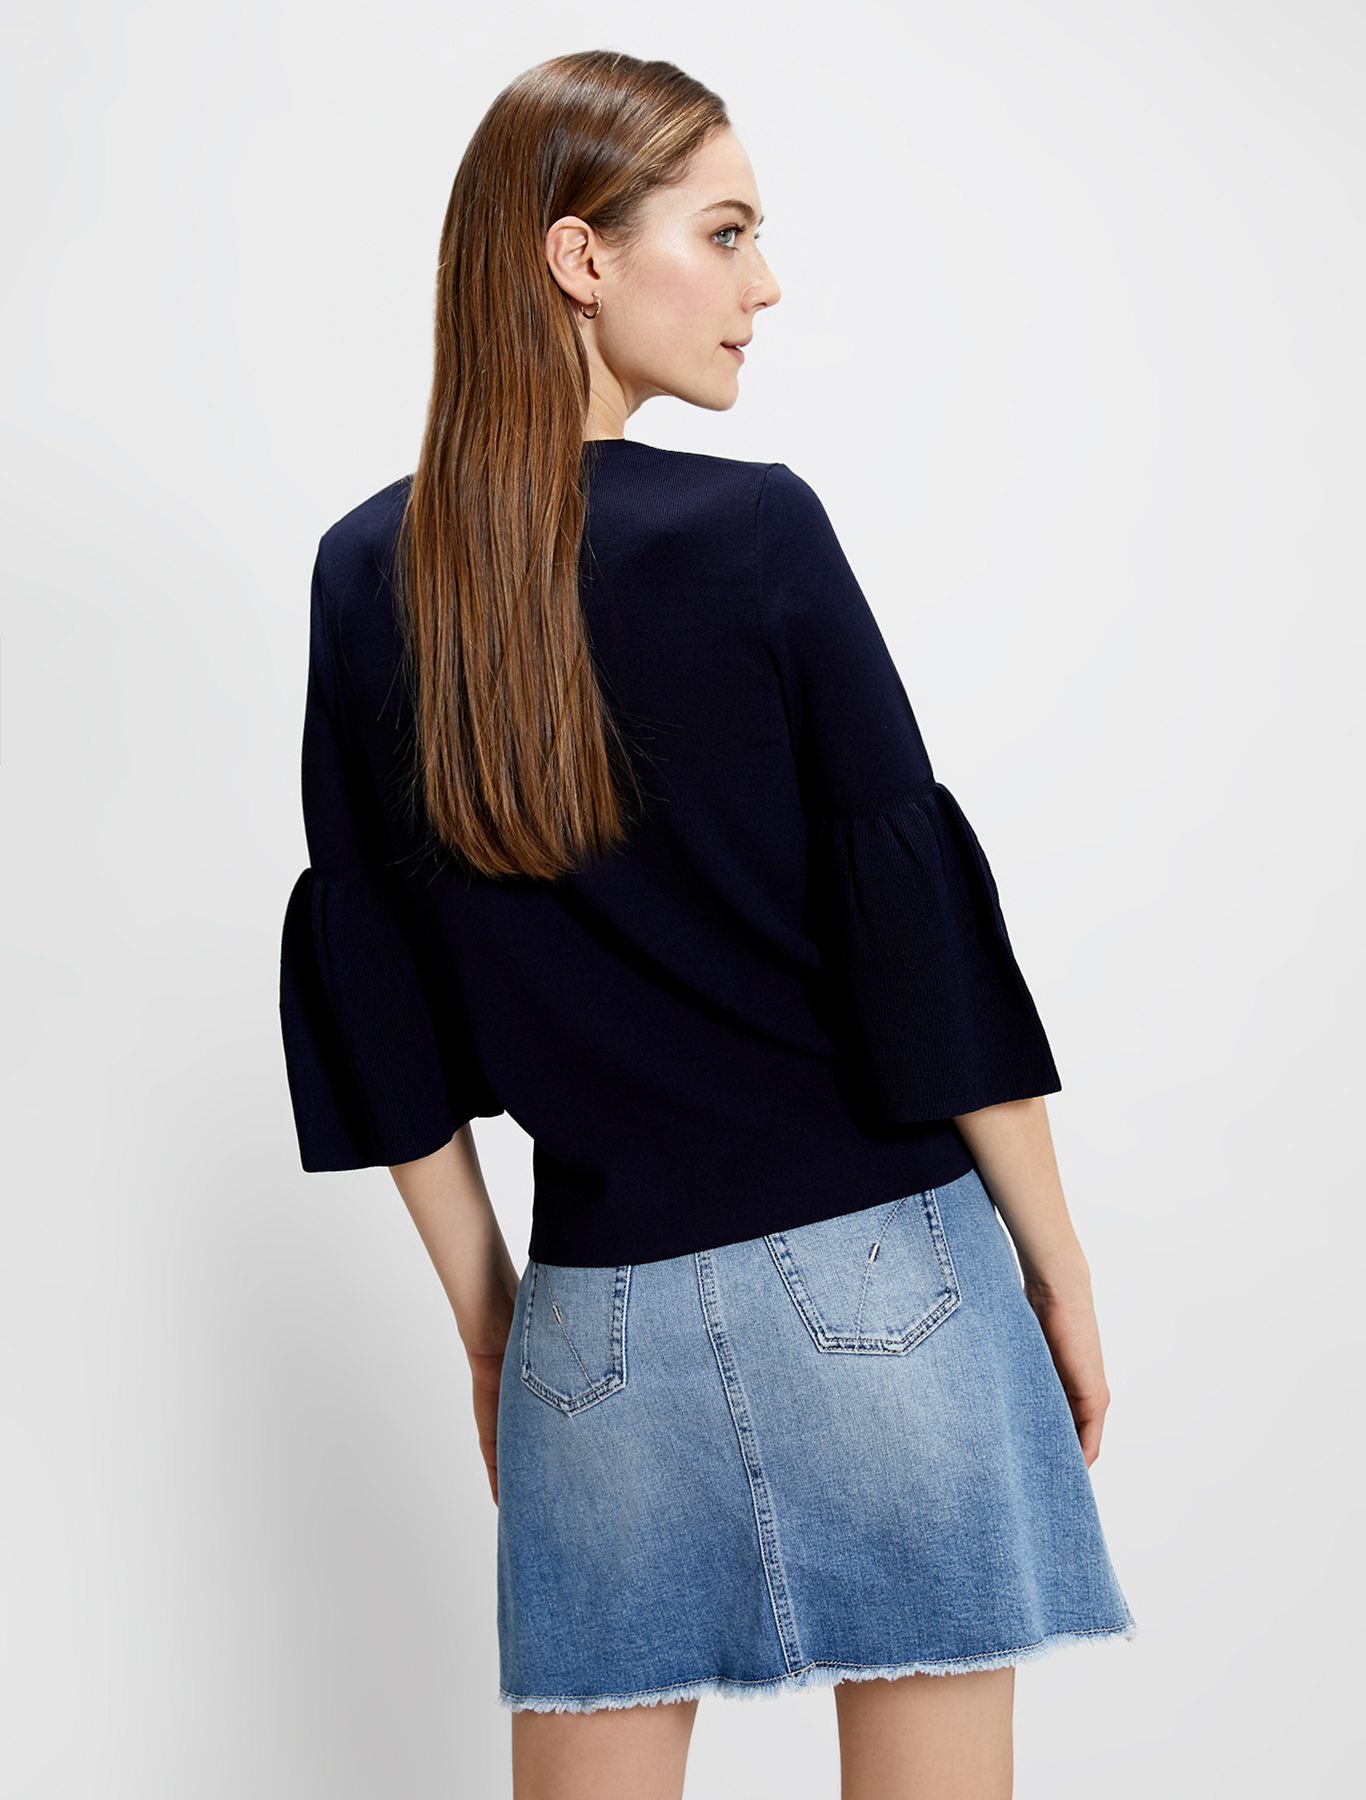 Jumper with flounced sleeves - navy blue - pennyblack